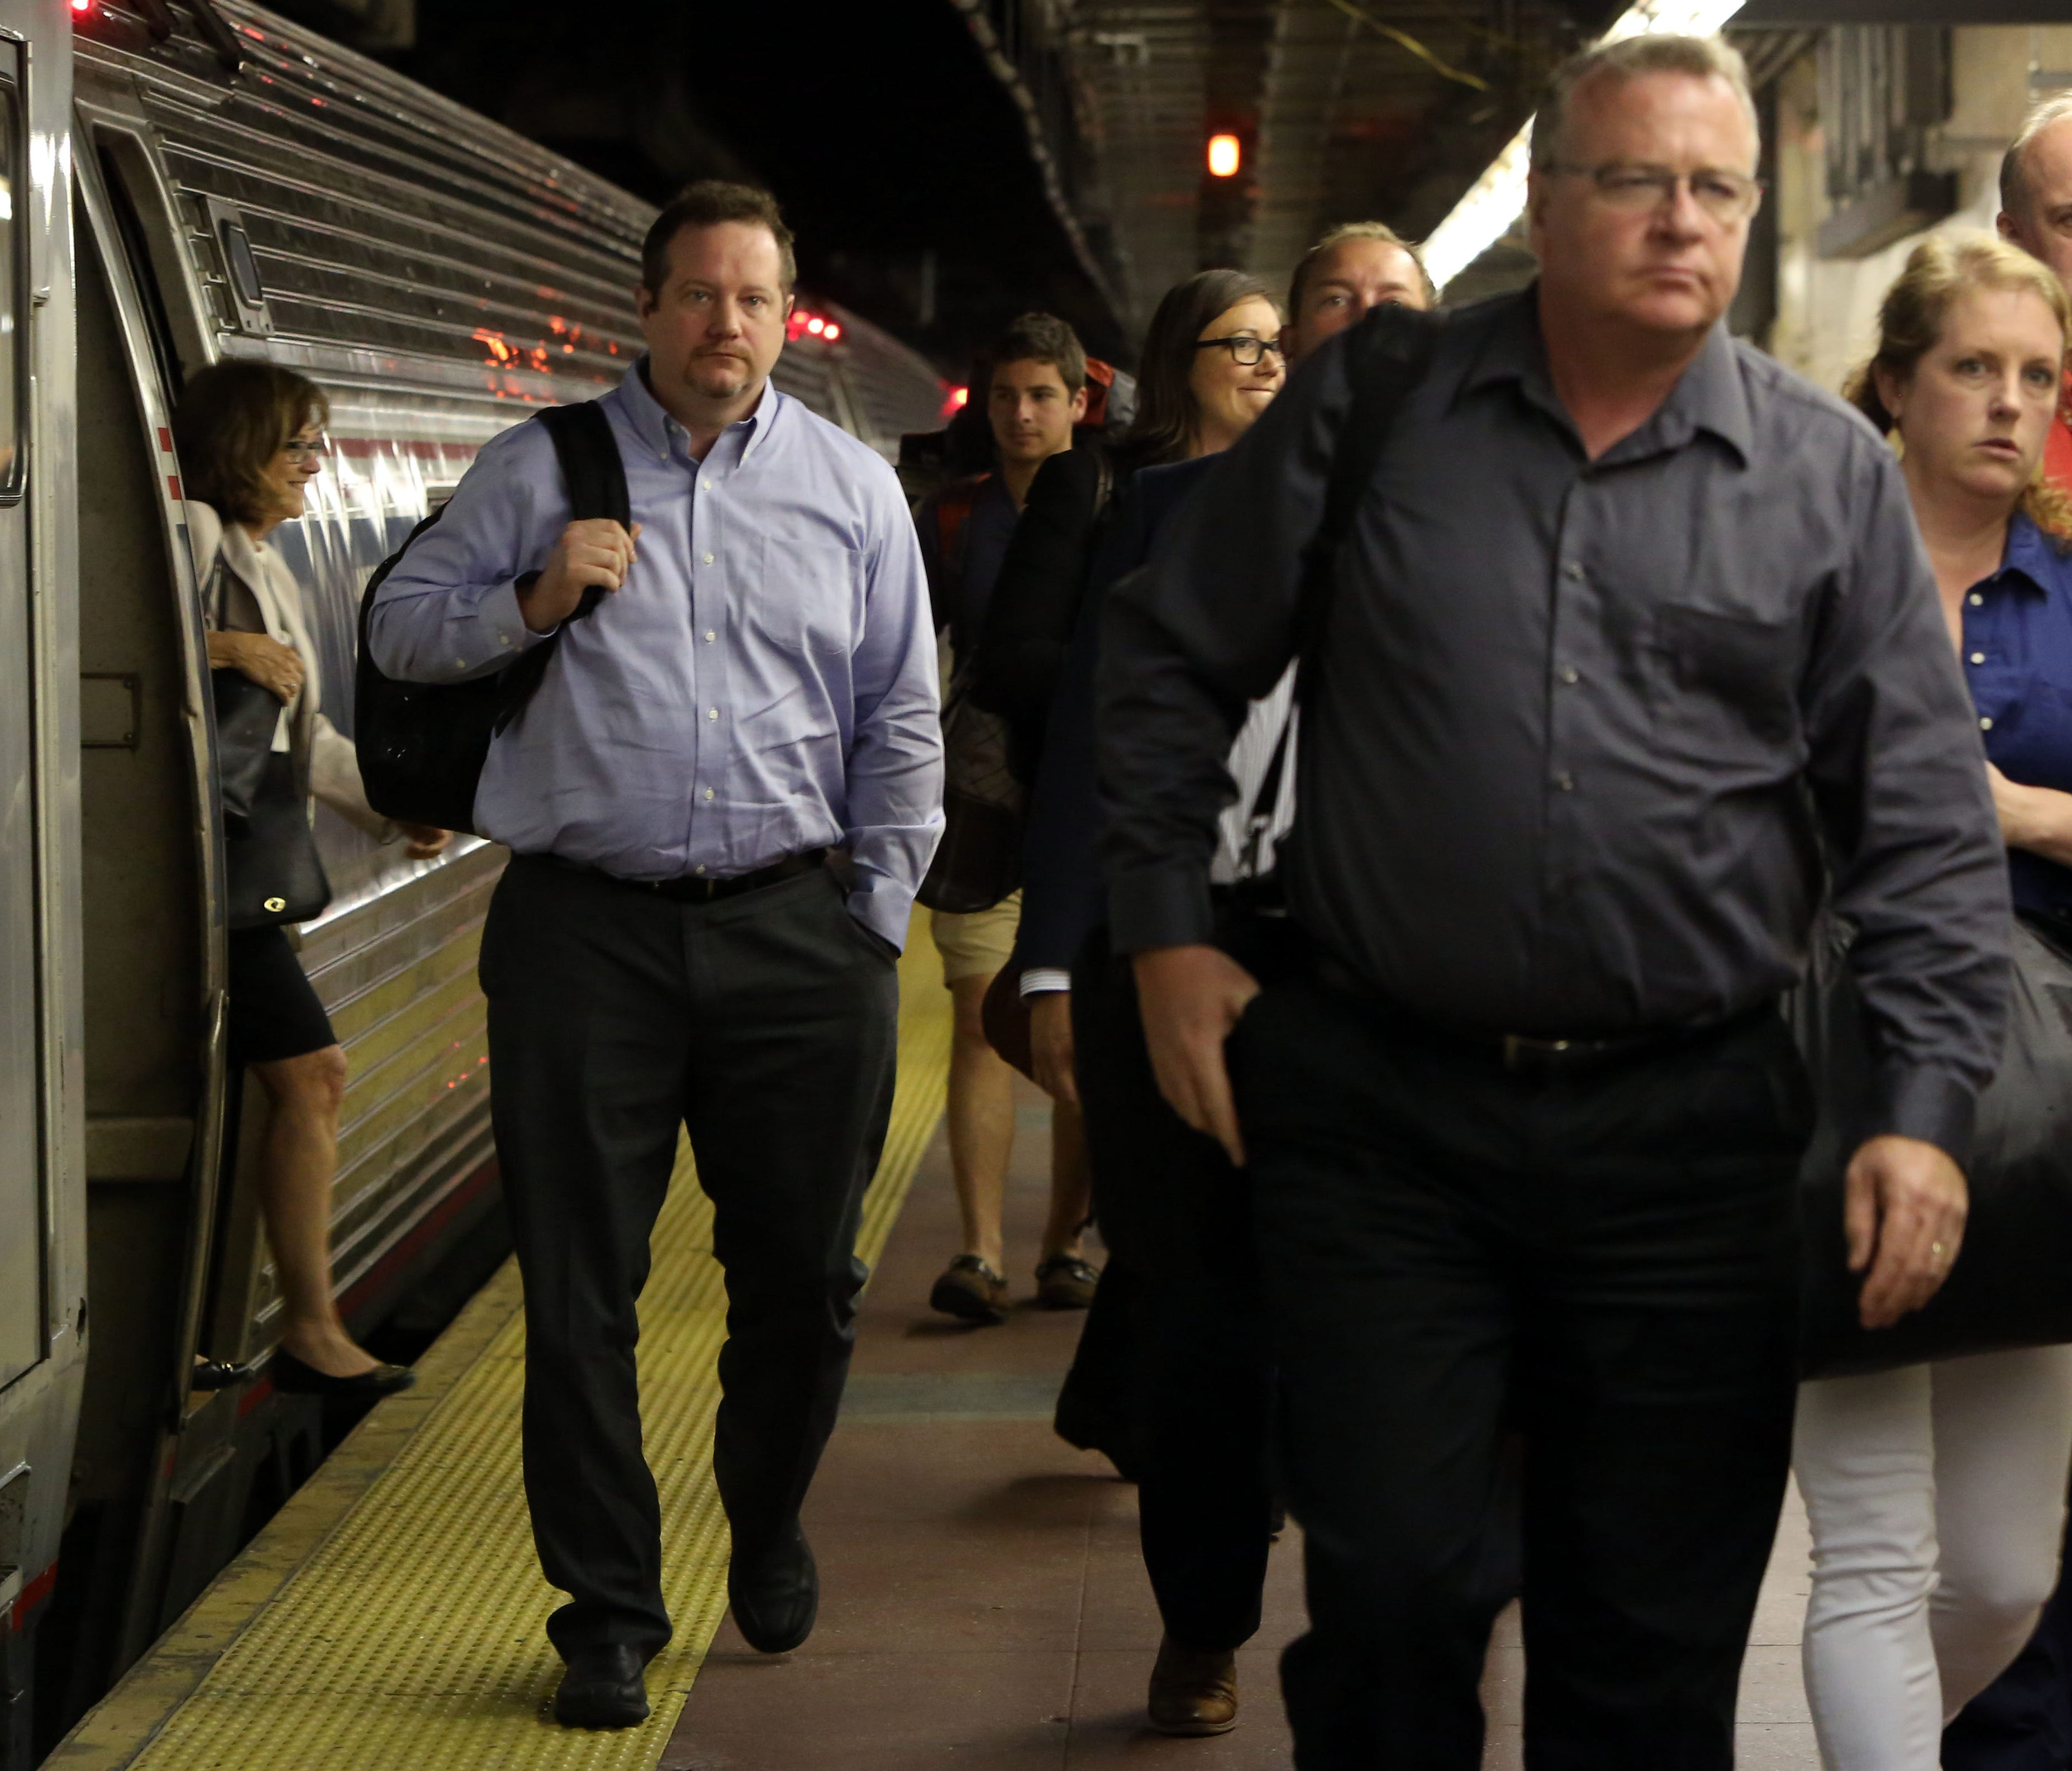 Commuters aboard the 7:30 a.m. Amtrak train from Albany arrive at Grand Central Terminal in Manhattan July 10, 2017. Six Amtrak trains, three in and three out, will be routed into Grand Central Terminal each day as Amtrak performs eight week's worth